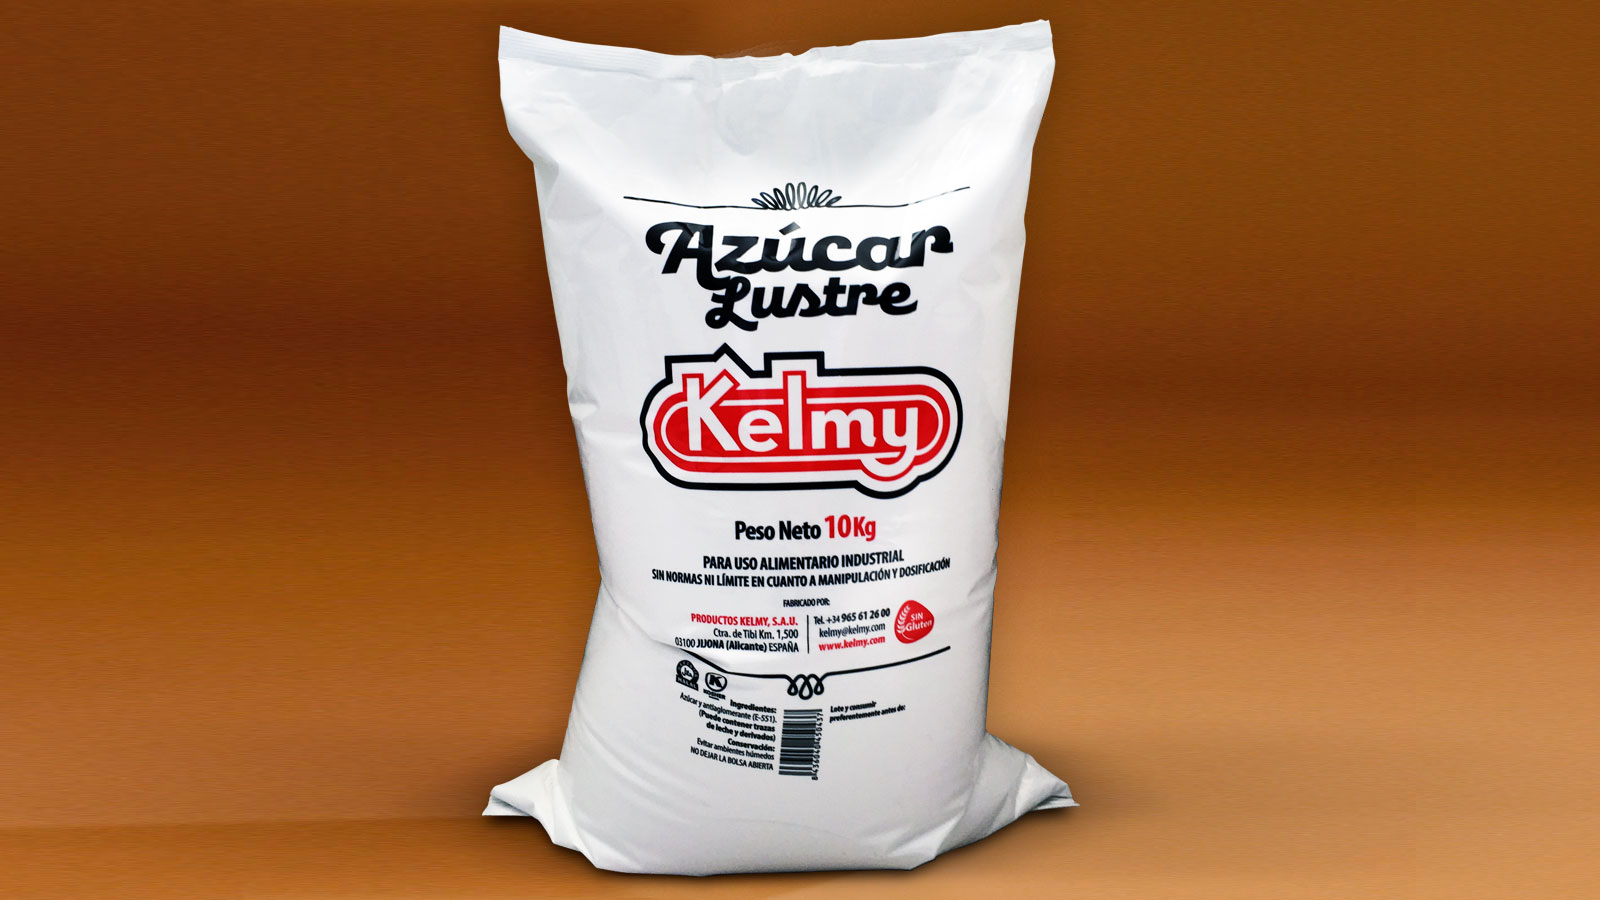 Kelmy Icing sugar - Finely ground sugar for use in confectionery